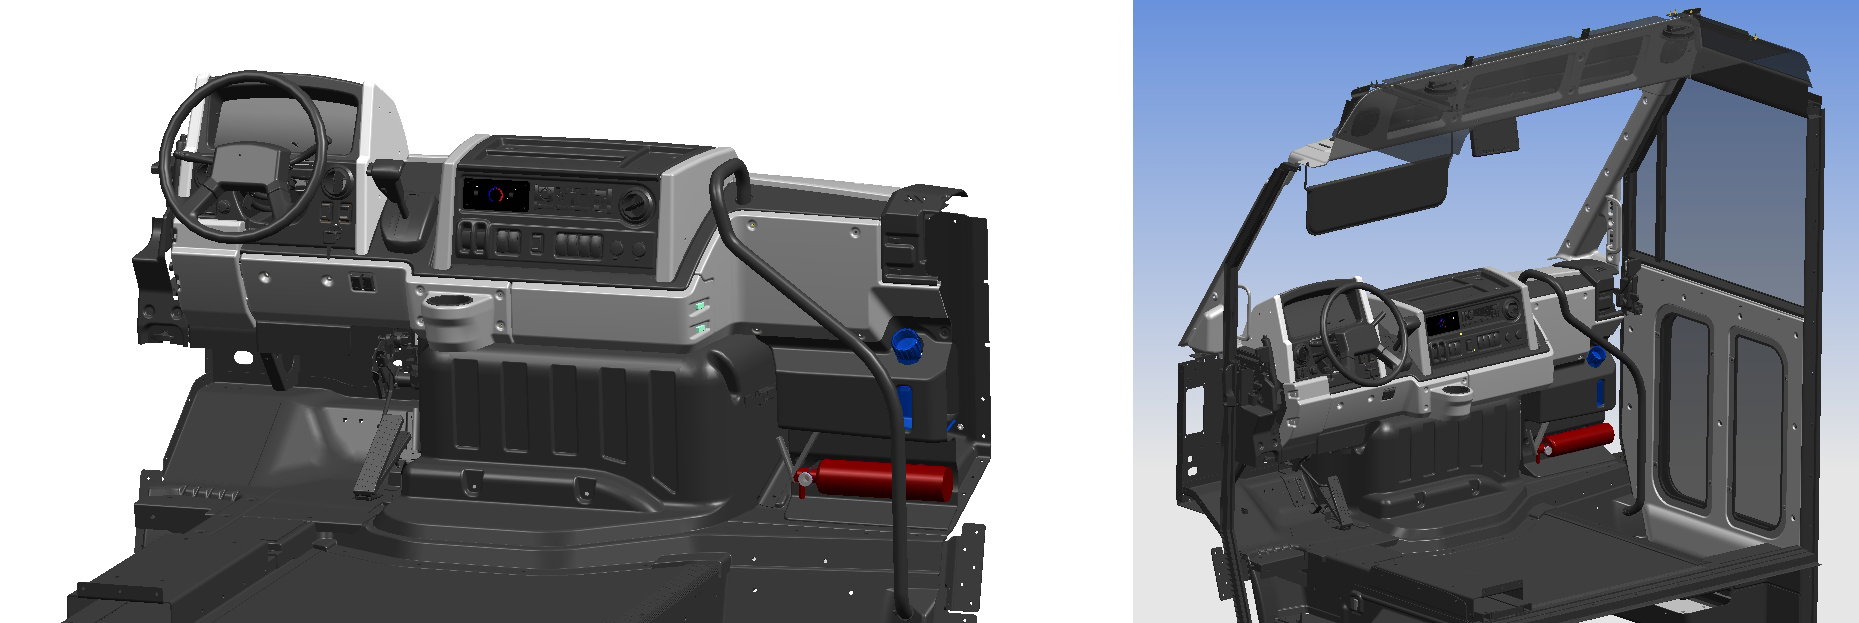 CAD images (provided by Roush)